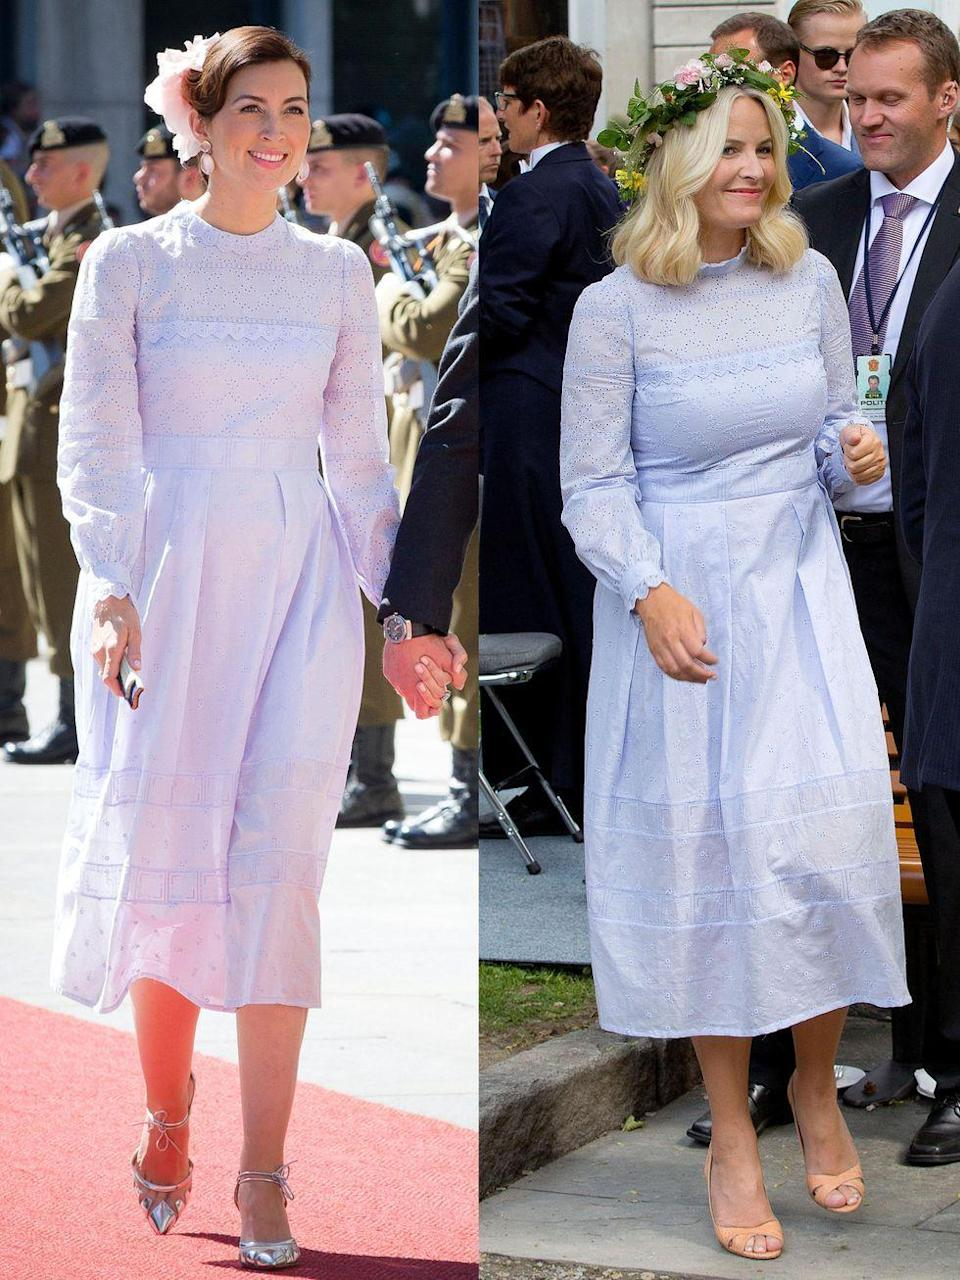 <p><strong>Left:</strong> Princess Claire of Luxembourg attended the 2016 National Day Celebration in Luxembourg wearing a pastel Vilshenko dress.</p><p><strong>Right:</strong> Crown Princess Mette Marit of Norway wore an extremely similar Vilshenko style on the exact same day during a royal event at Stiftsgarden in Trondheim.</p>